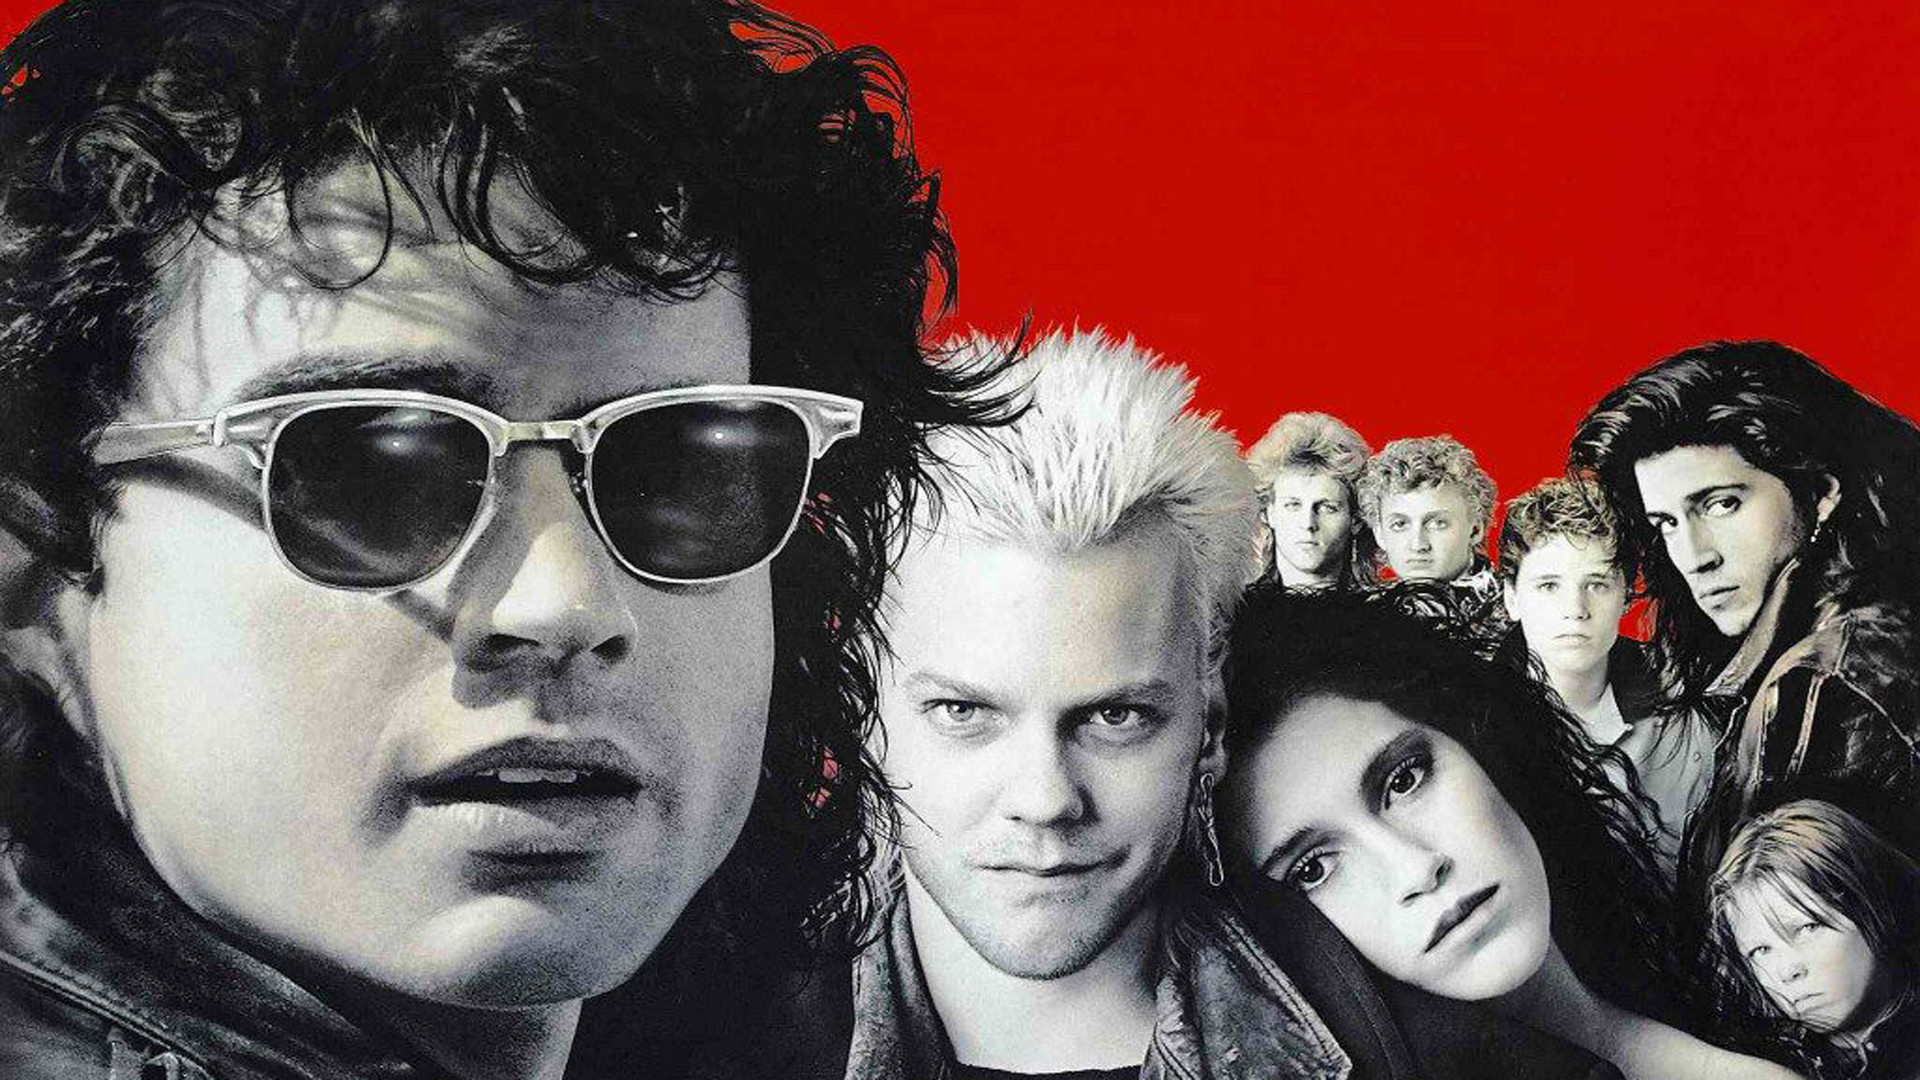 The lost boys movie images download 1 wallpaper and background.